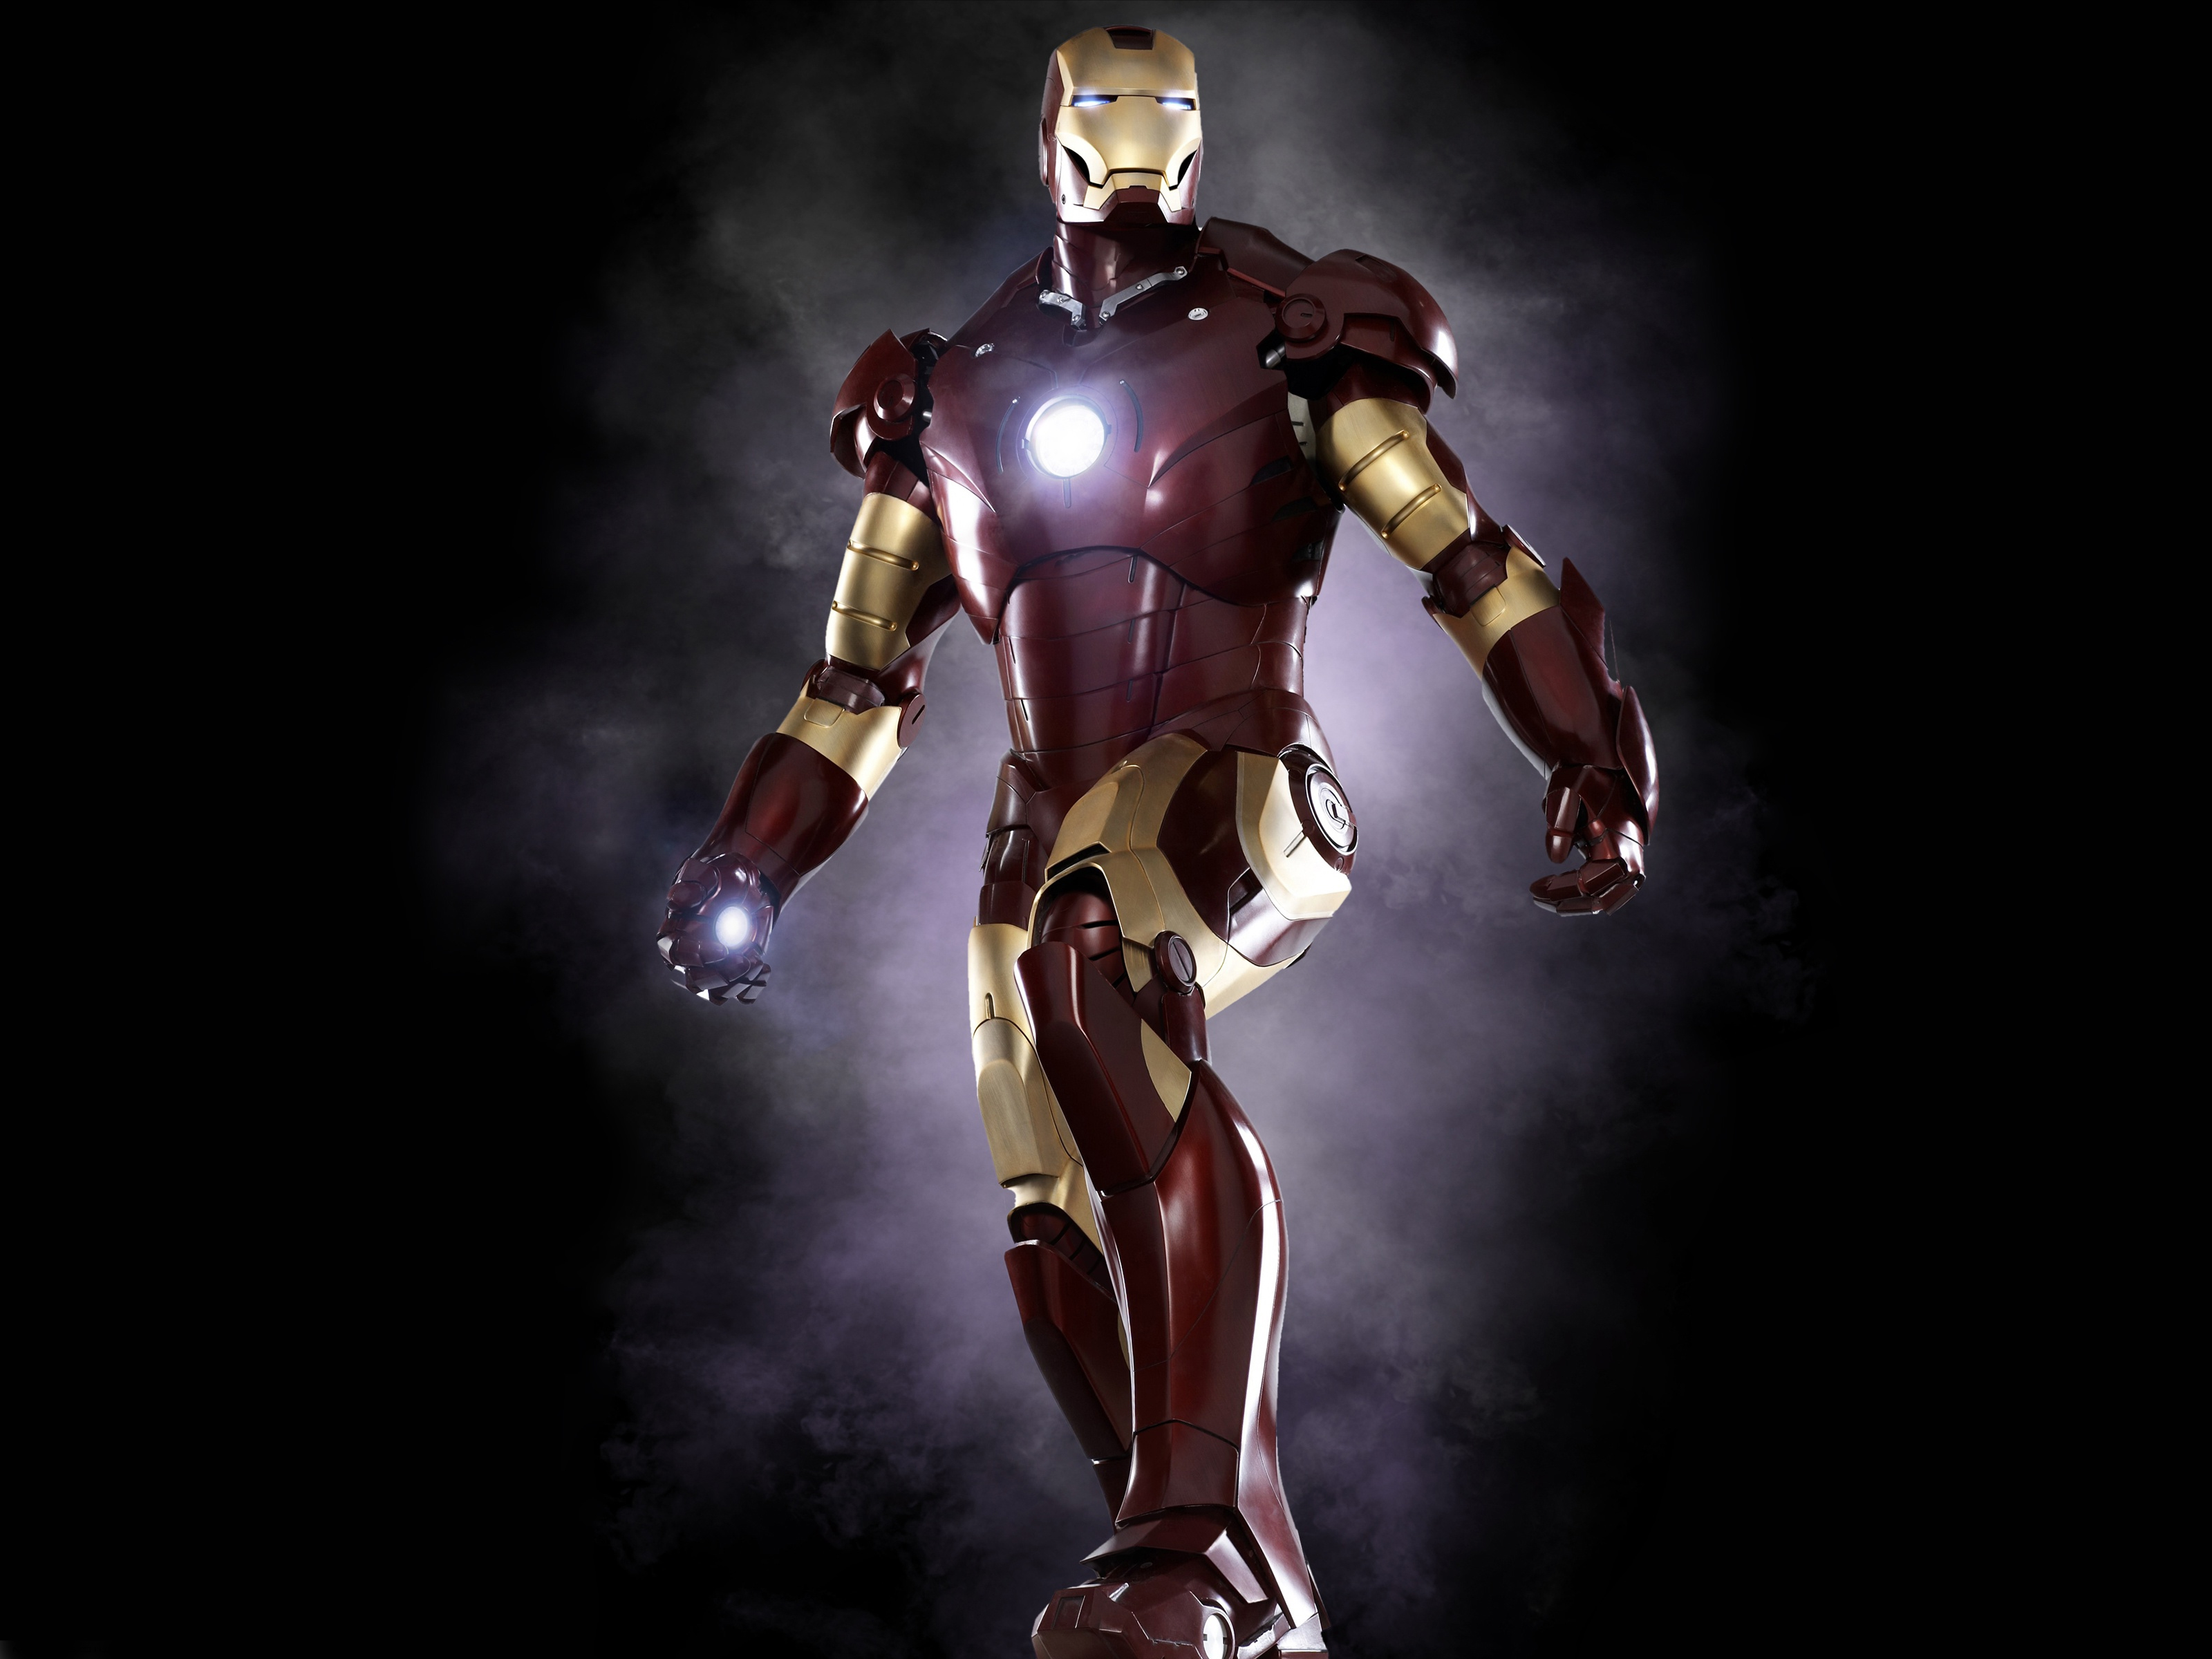 Iron Man Hd Wallpapers Download Sf Wallpaper